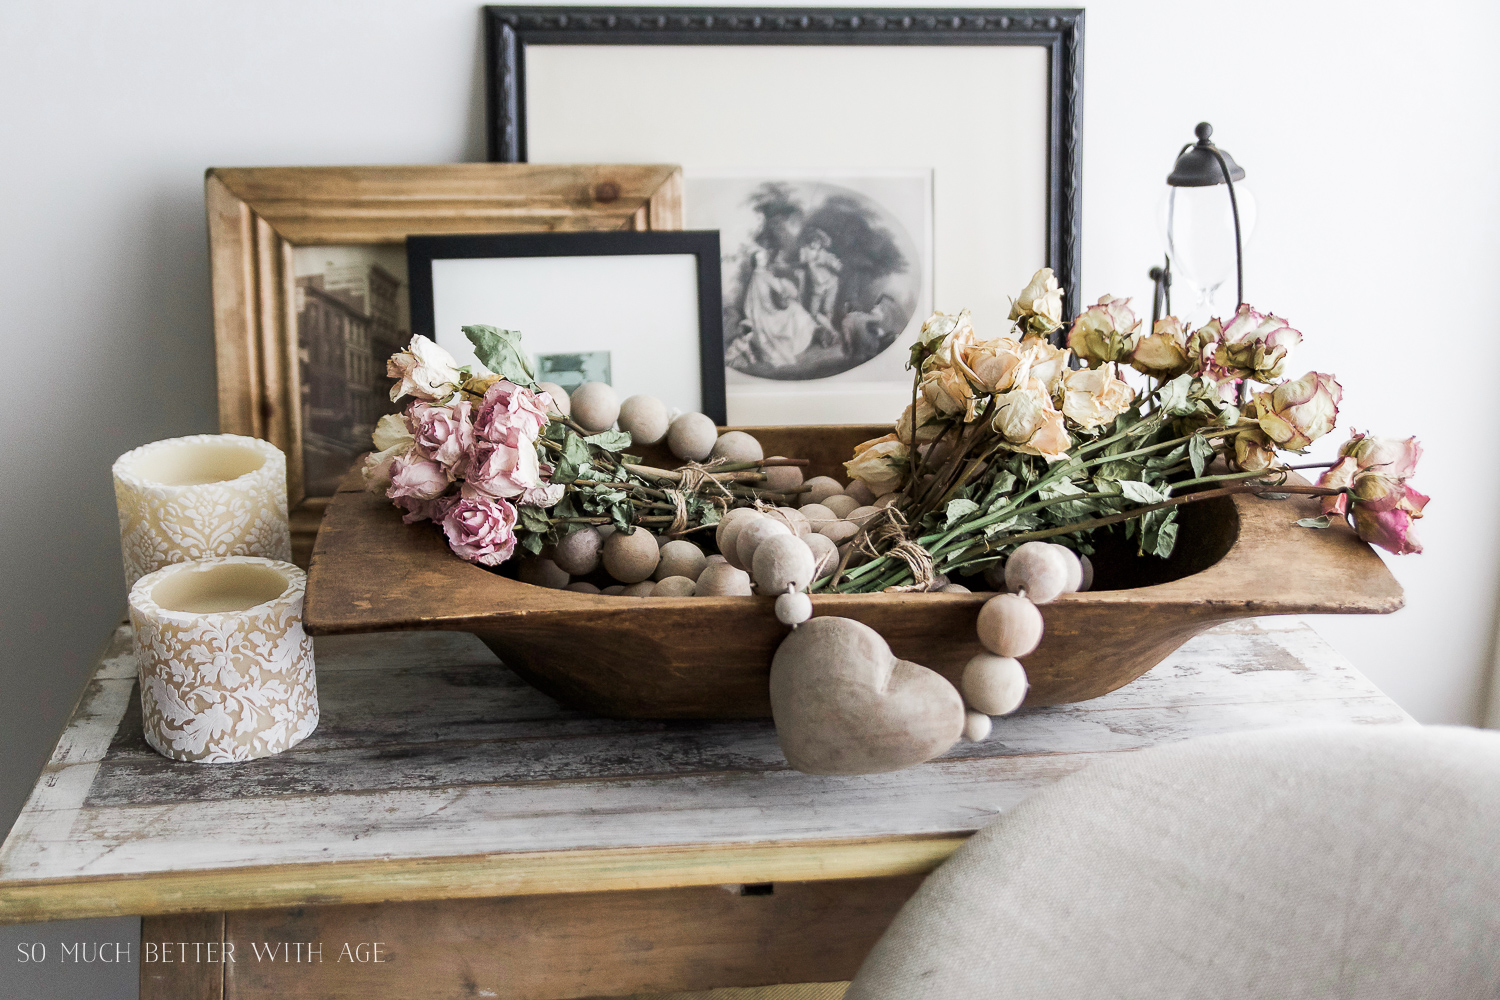 Easter Egg Stick Garland & French Vintage Spring Tour / French decor details - So Much Better With age